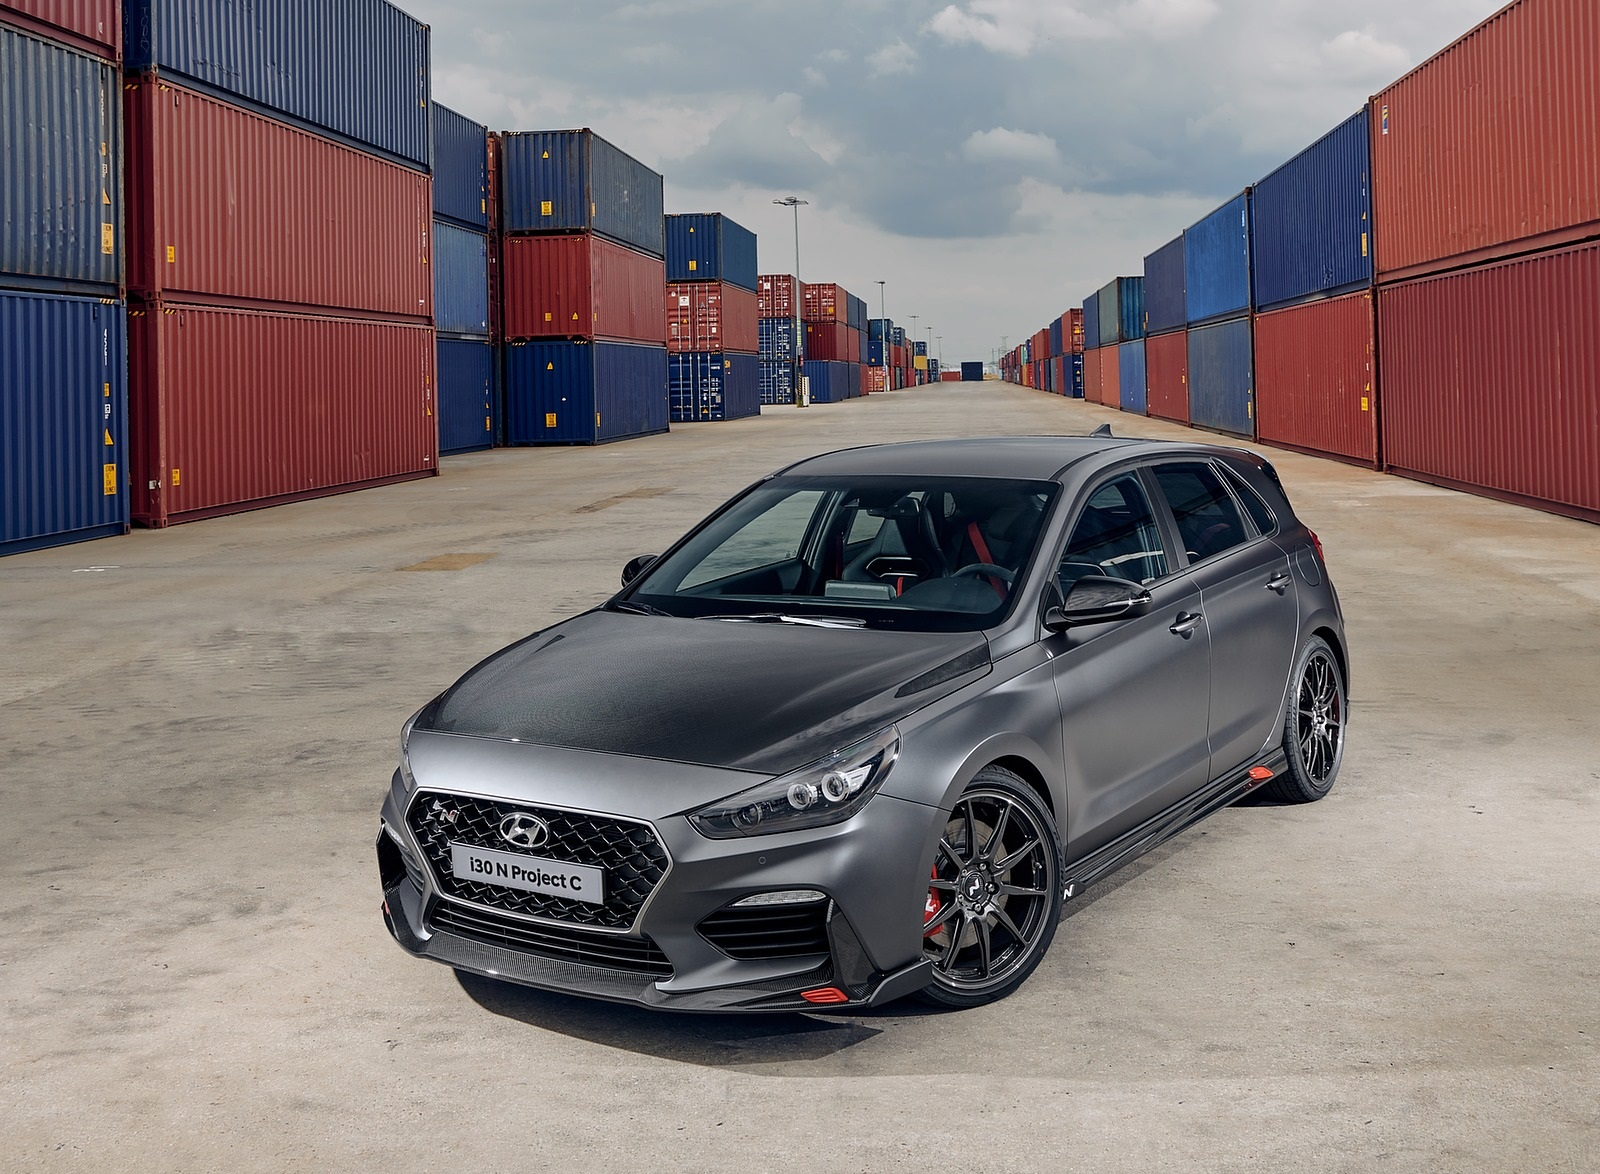 2020 Hyundai i30 N Project C Front Three-Quarter Wallpapers (13)